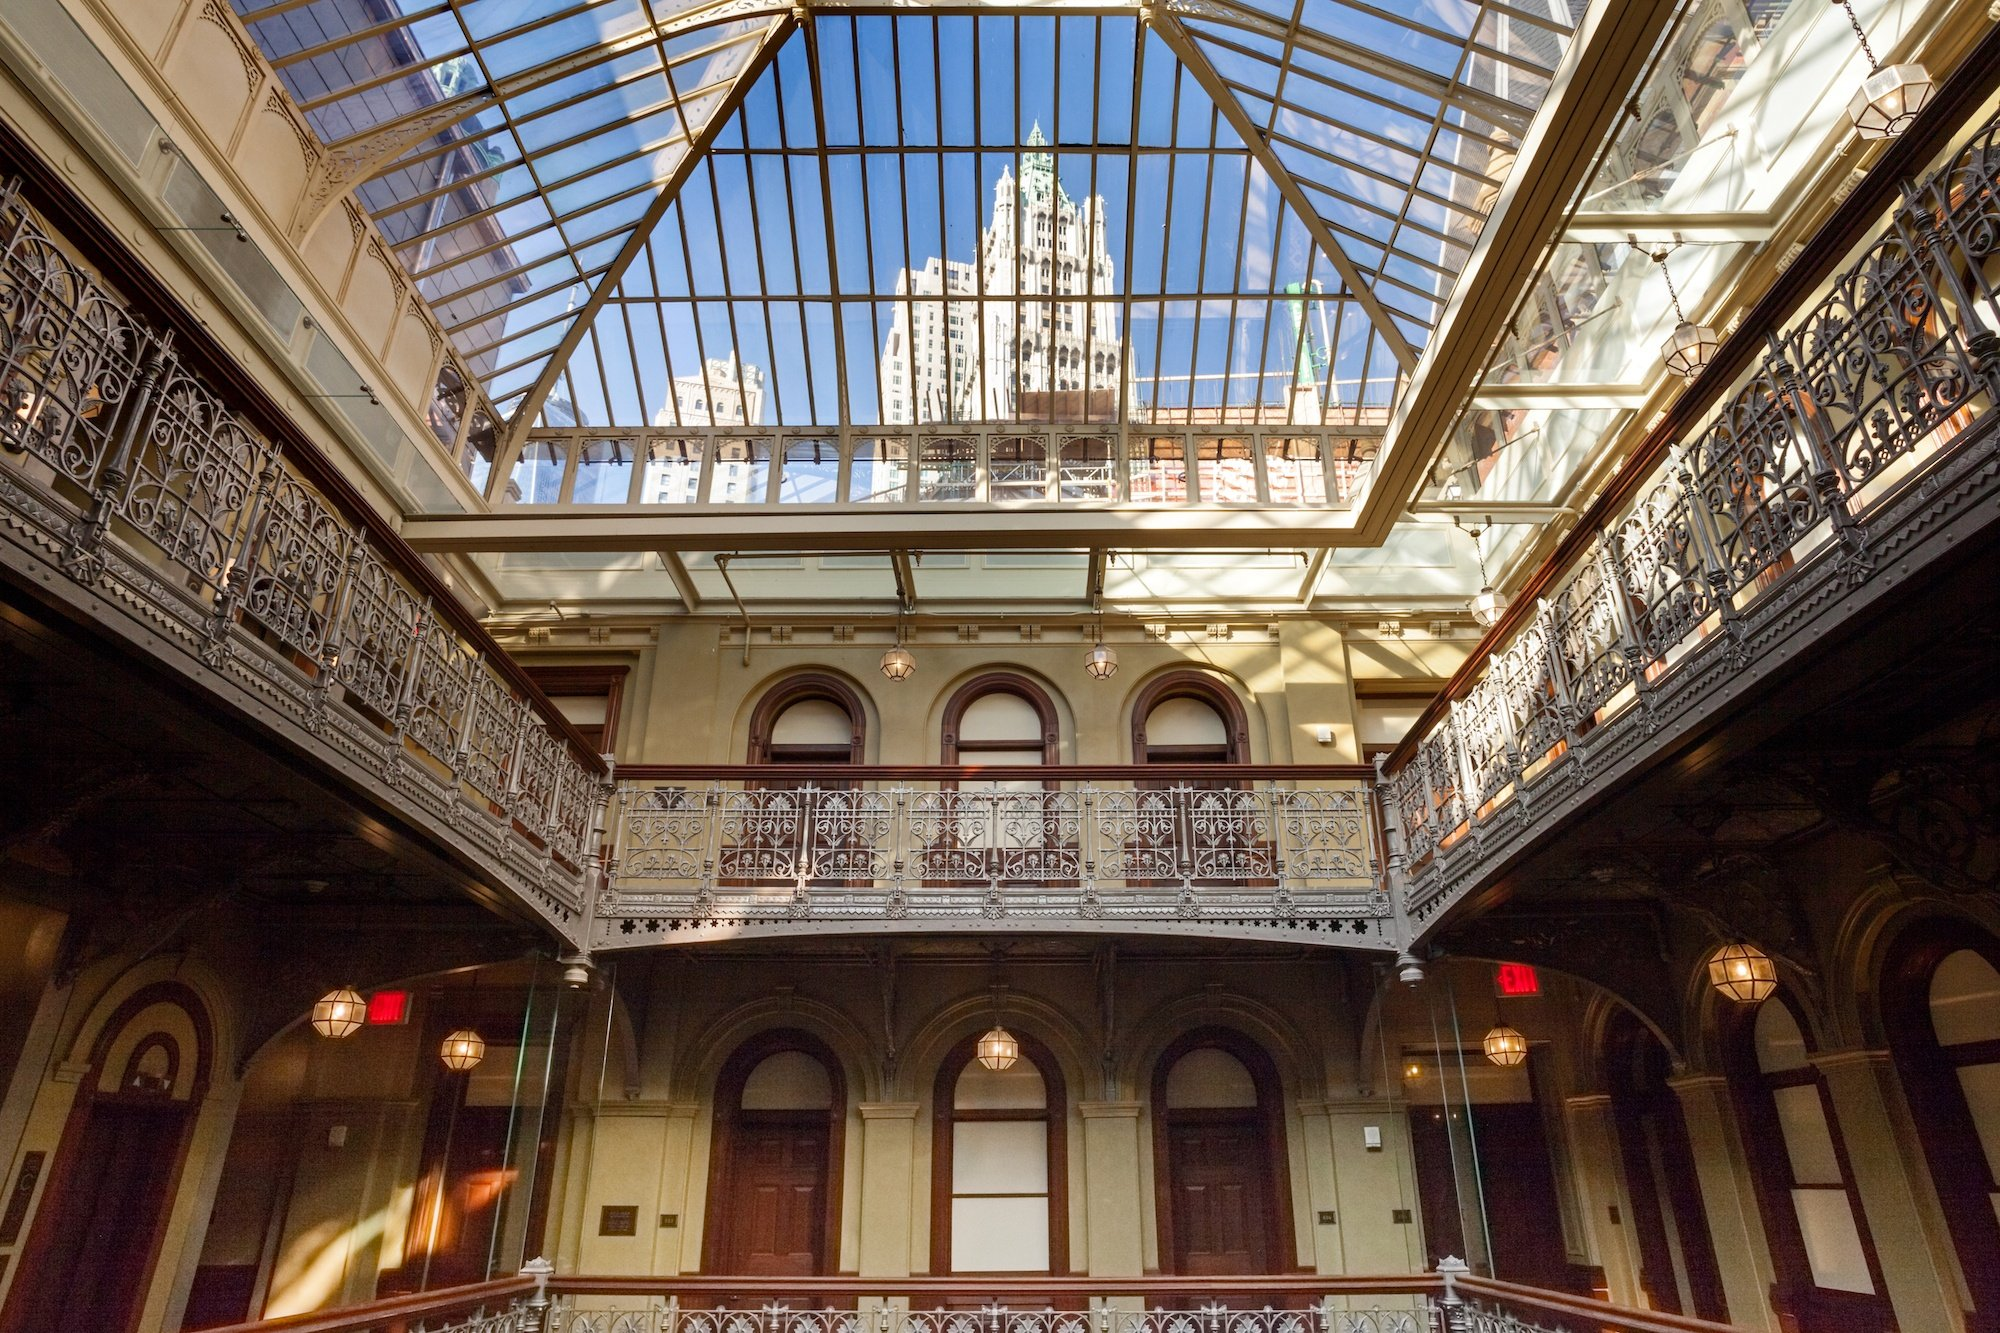 Temple Court, The Beekman, 123 Nassau Street, 5 Beekman Street, James and Karla Murray